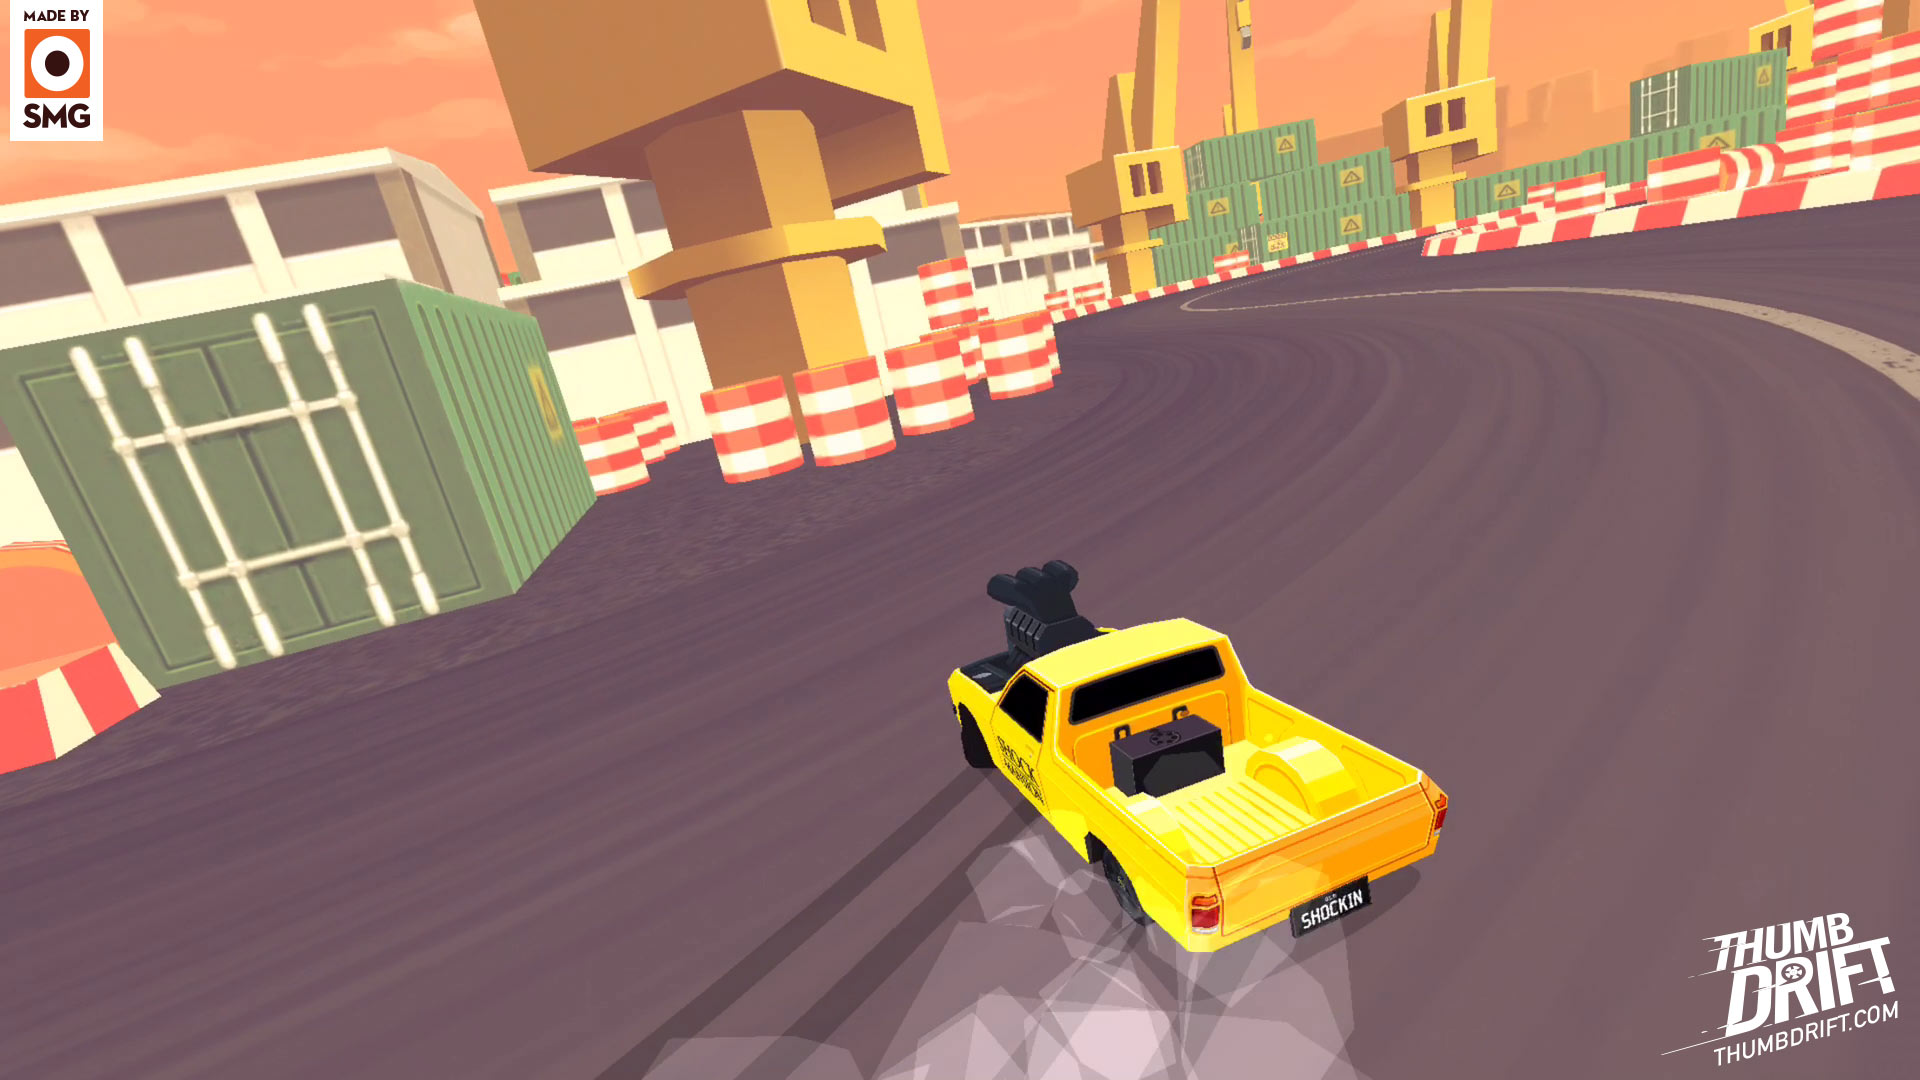 Thumb Drift: Furious One Touch Car Racing for mobile and tablet